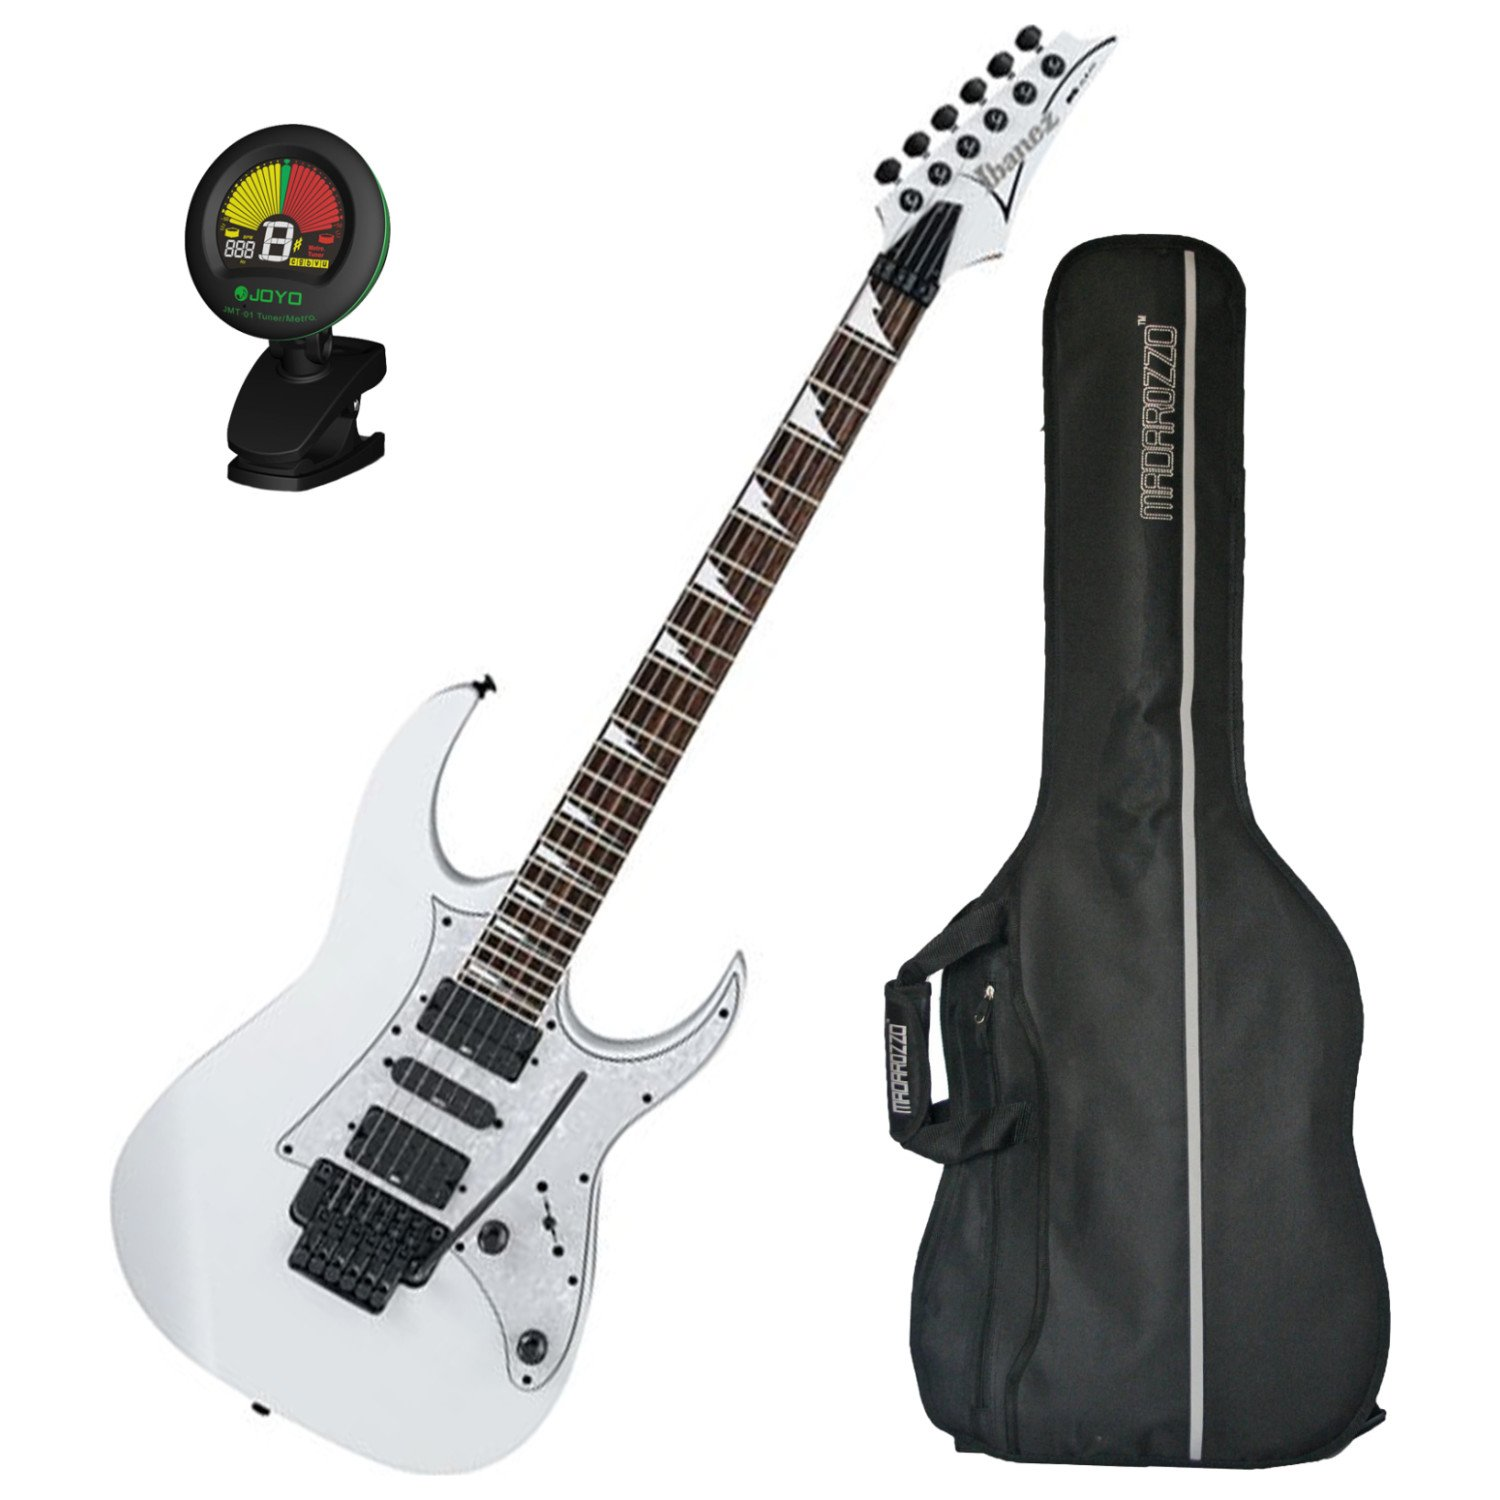 Cheap Ibanez RG450DXBWH Electric Guitar White w/ Gig Bag and Tuner! Black Friday & Cyber Monday 2019